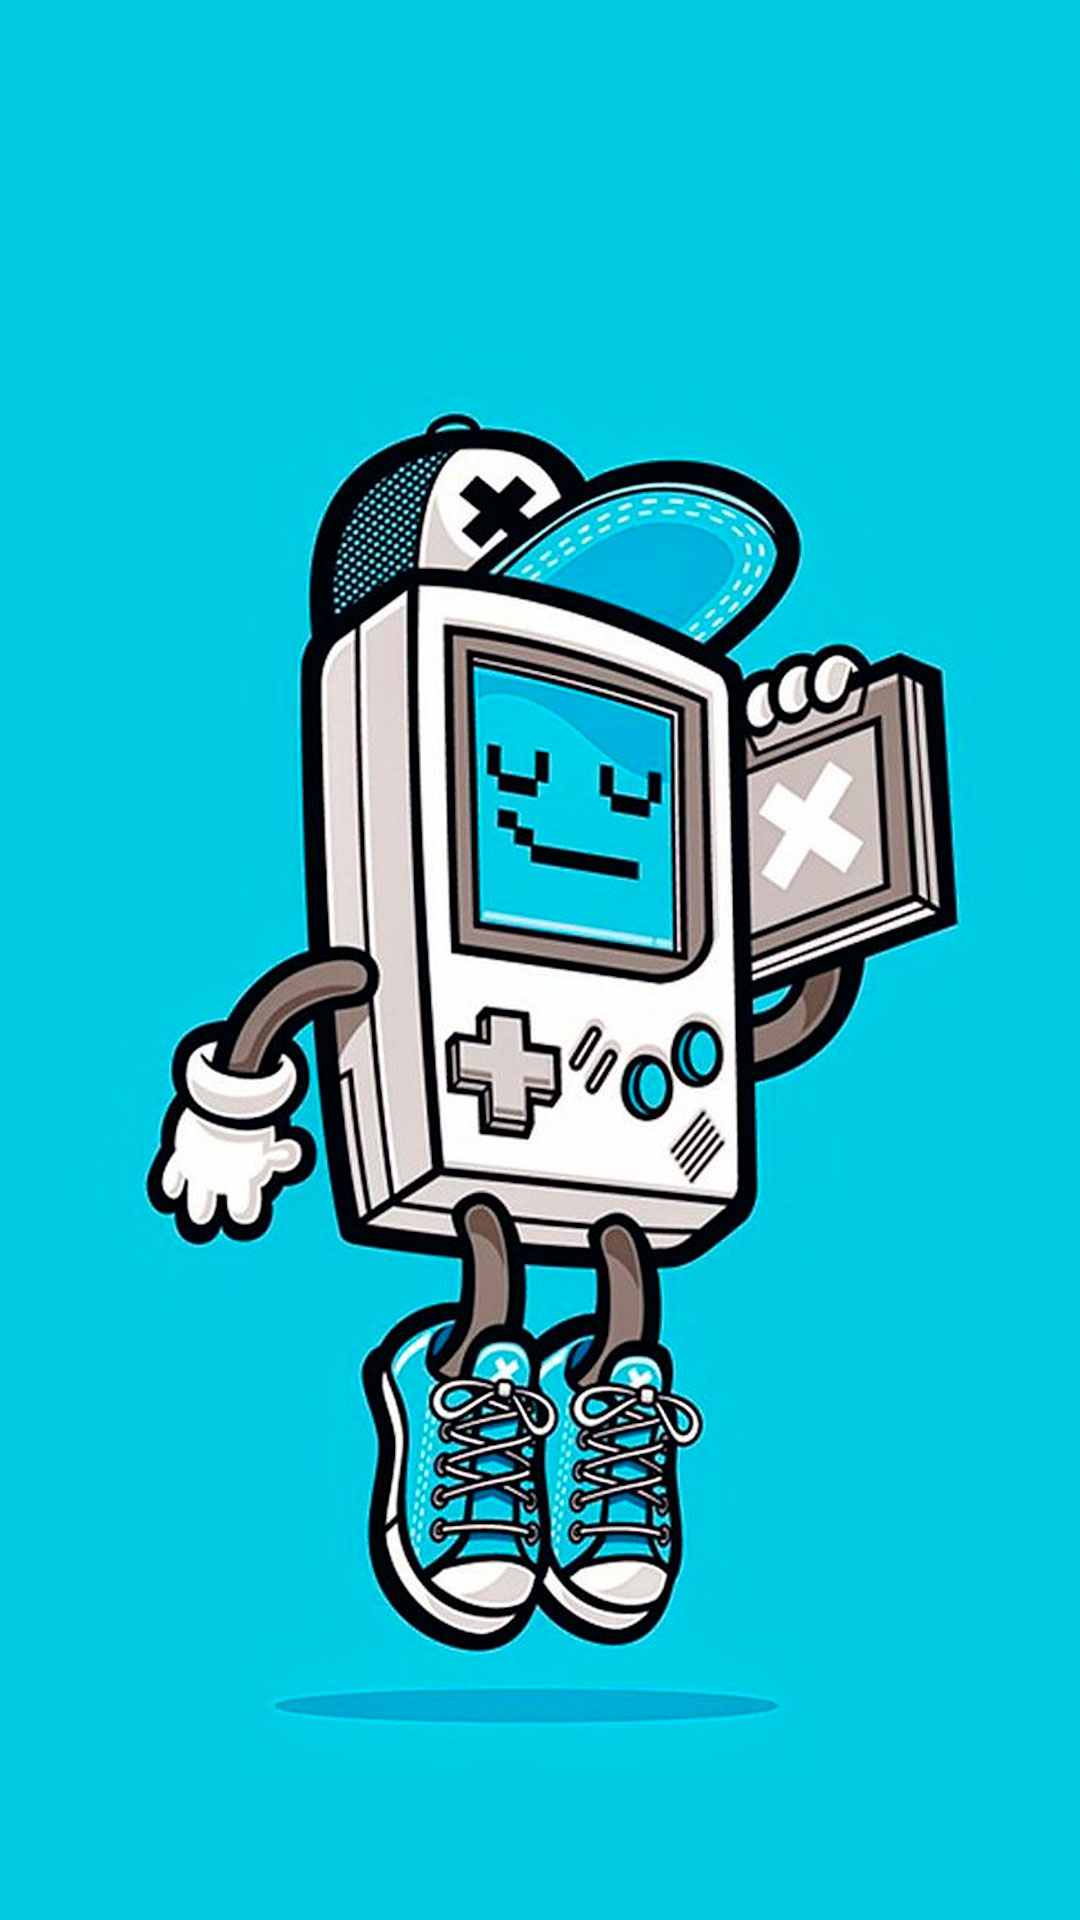 Gameboy Iphone X Wallpaper Retro Games Wallpaper For Iphone X 8 7 6 Free